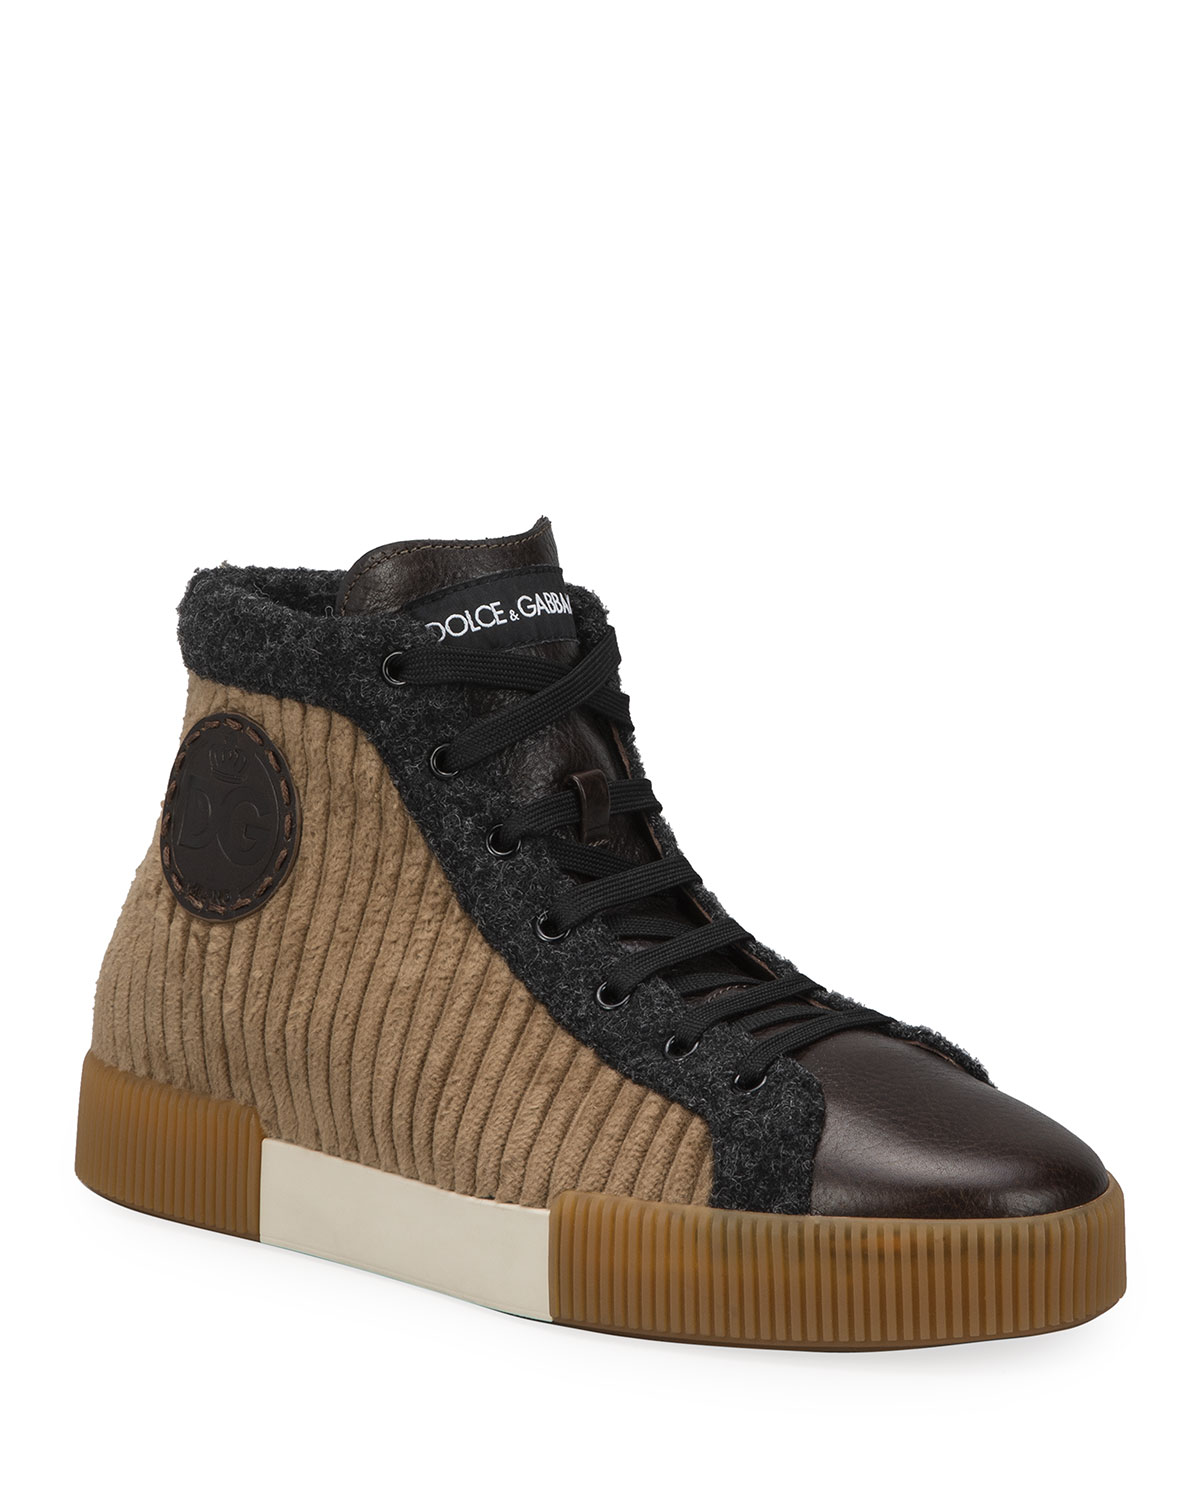 Dolce & Gabbana Men's Runway Mix-Media High-Top Sneakers